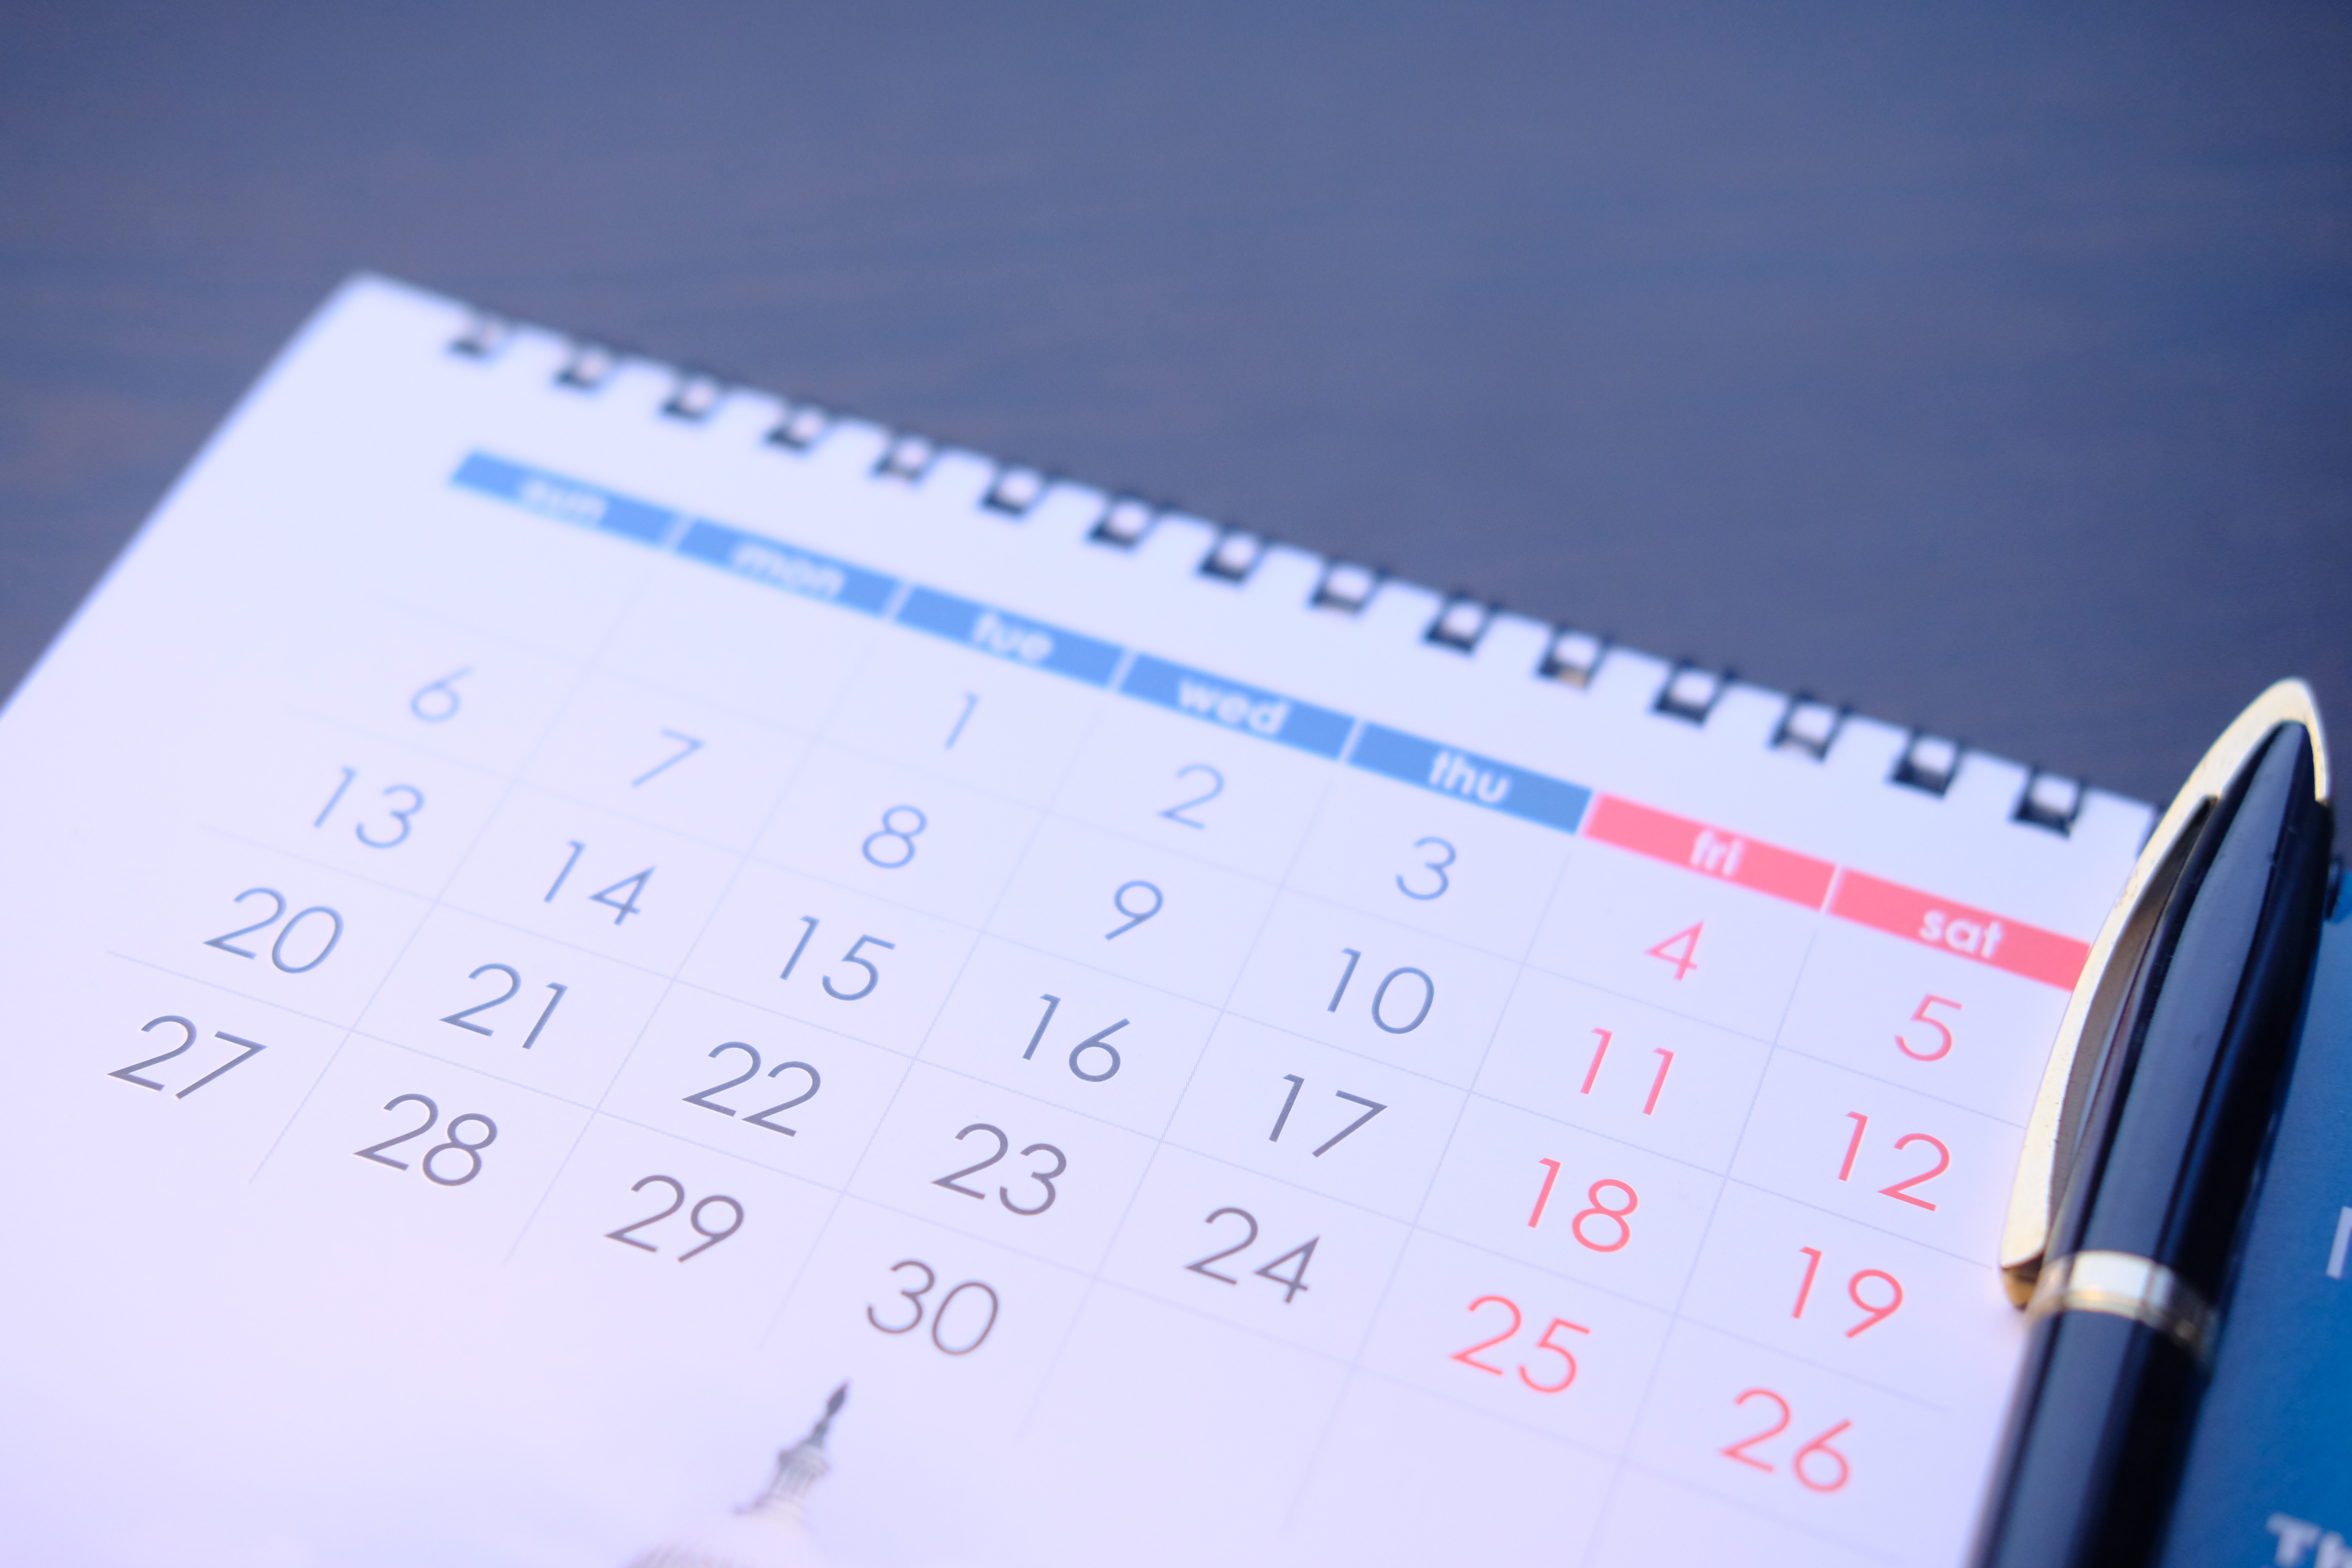 Semi Weekly Deposit Schedule 2020 How to Calculate Dates for Bi Weekly Payroll | Bizfluent